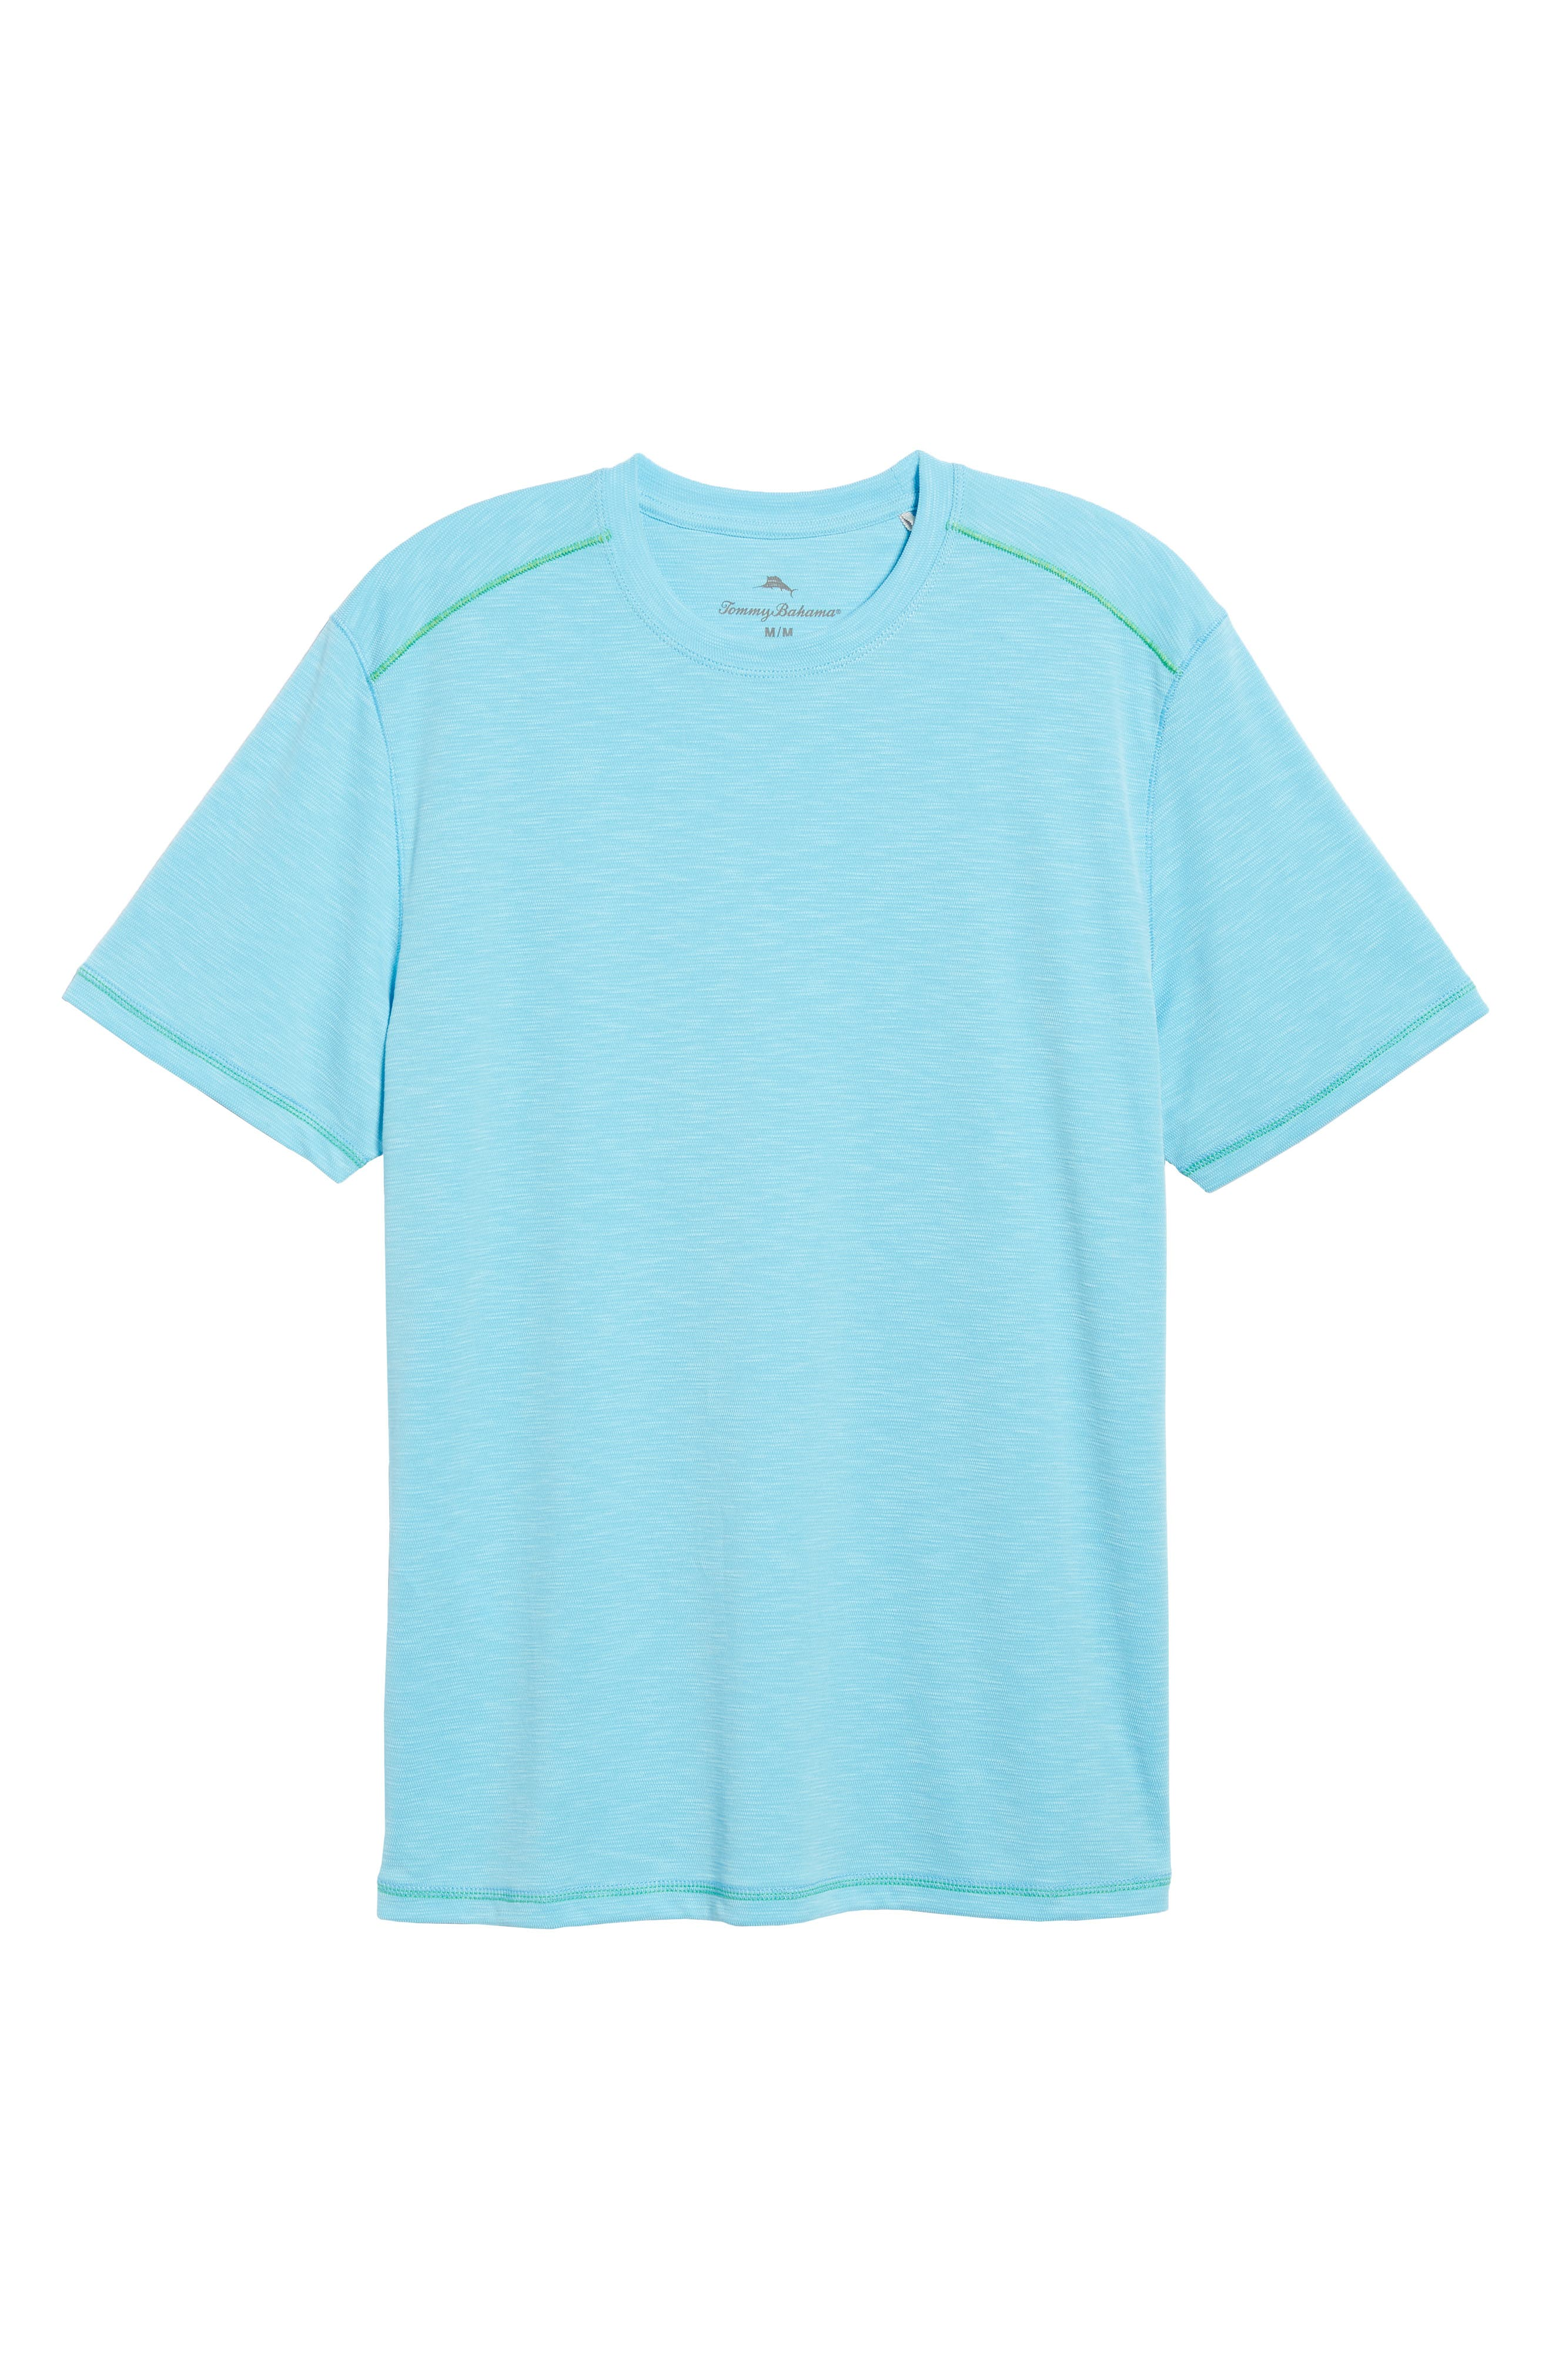 'Paradise Around' Crewneck T-Shirt,                         Main,                         color, Breeze Blue